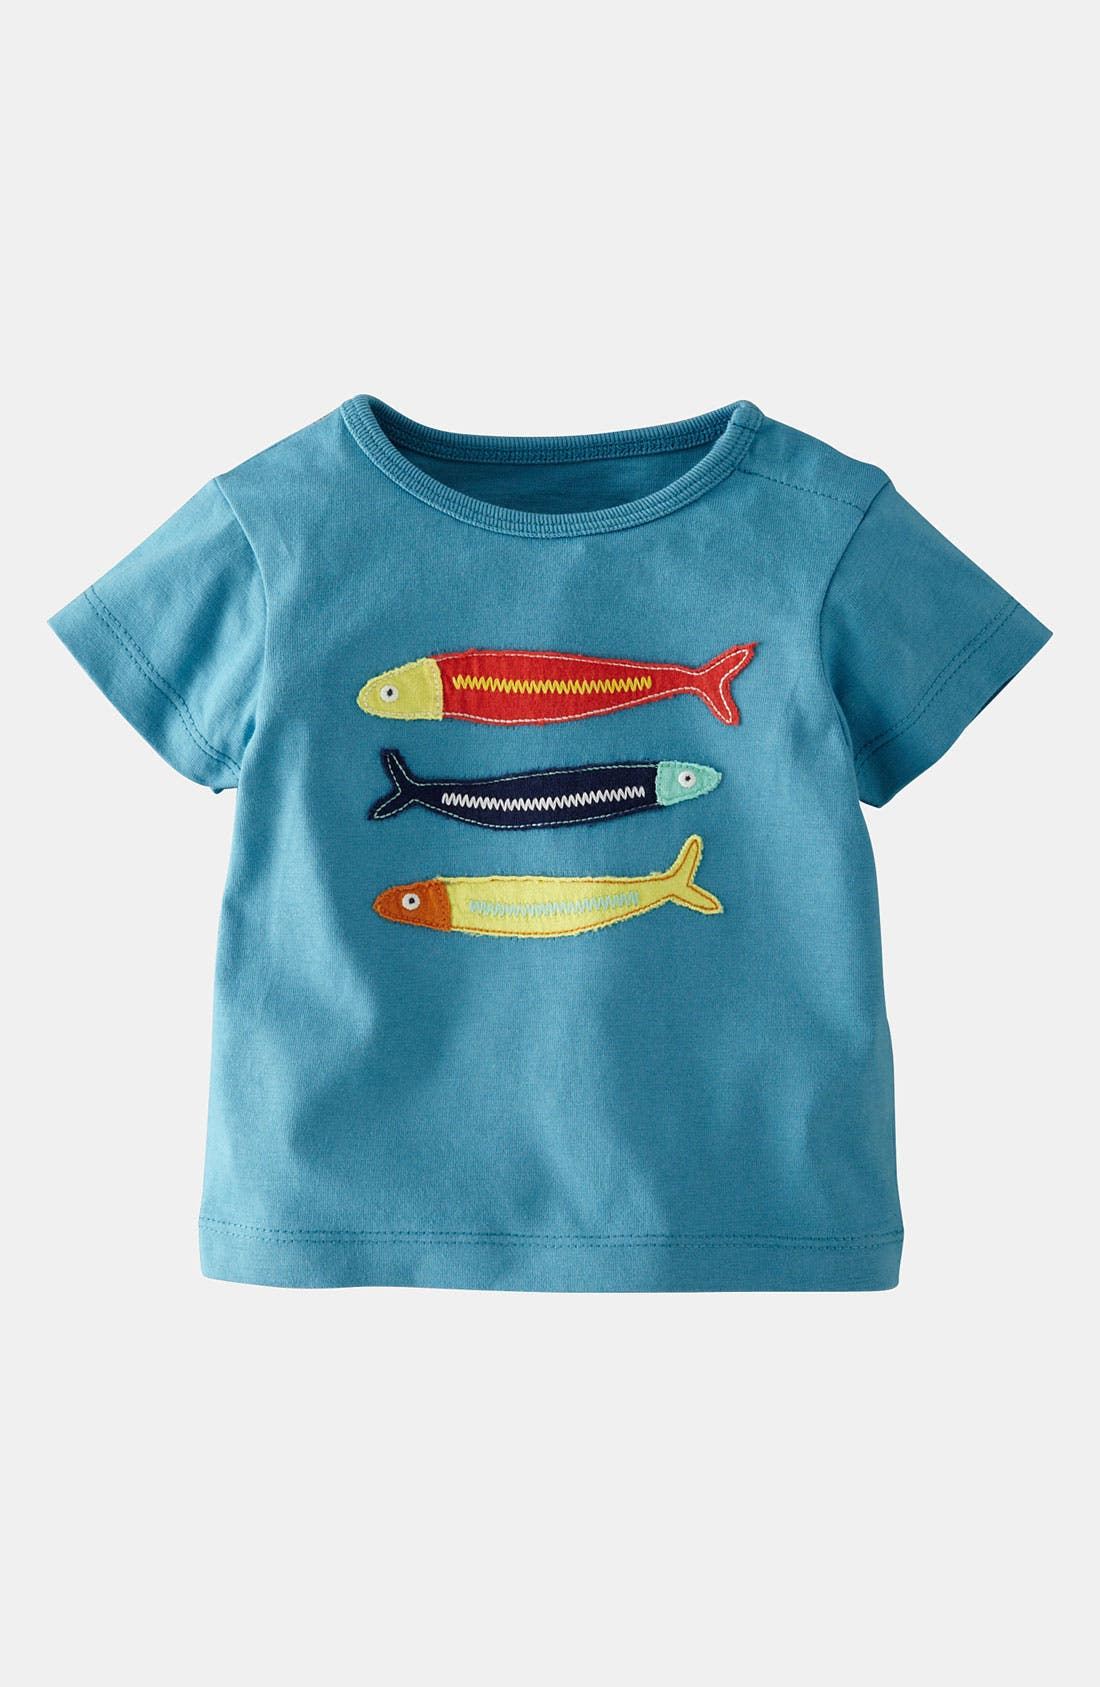 Alternate Image 1 Selected - Mini Boden 'Big Appliqué' T-Shirt (Infant)